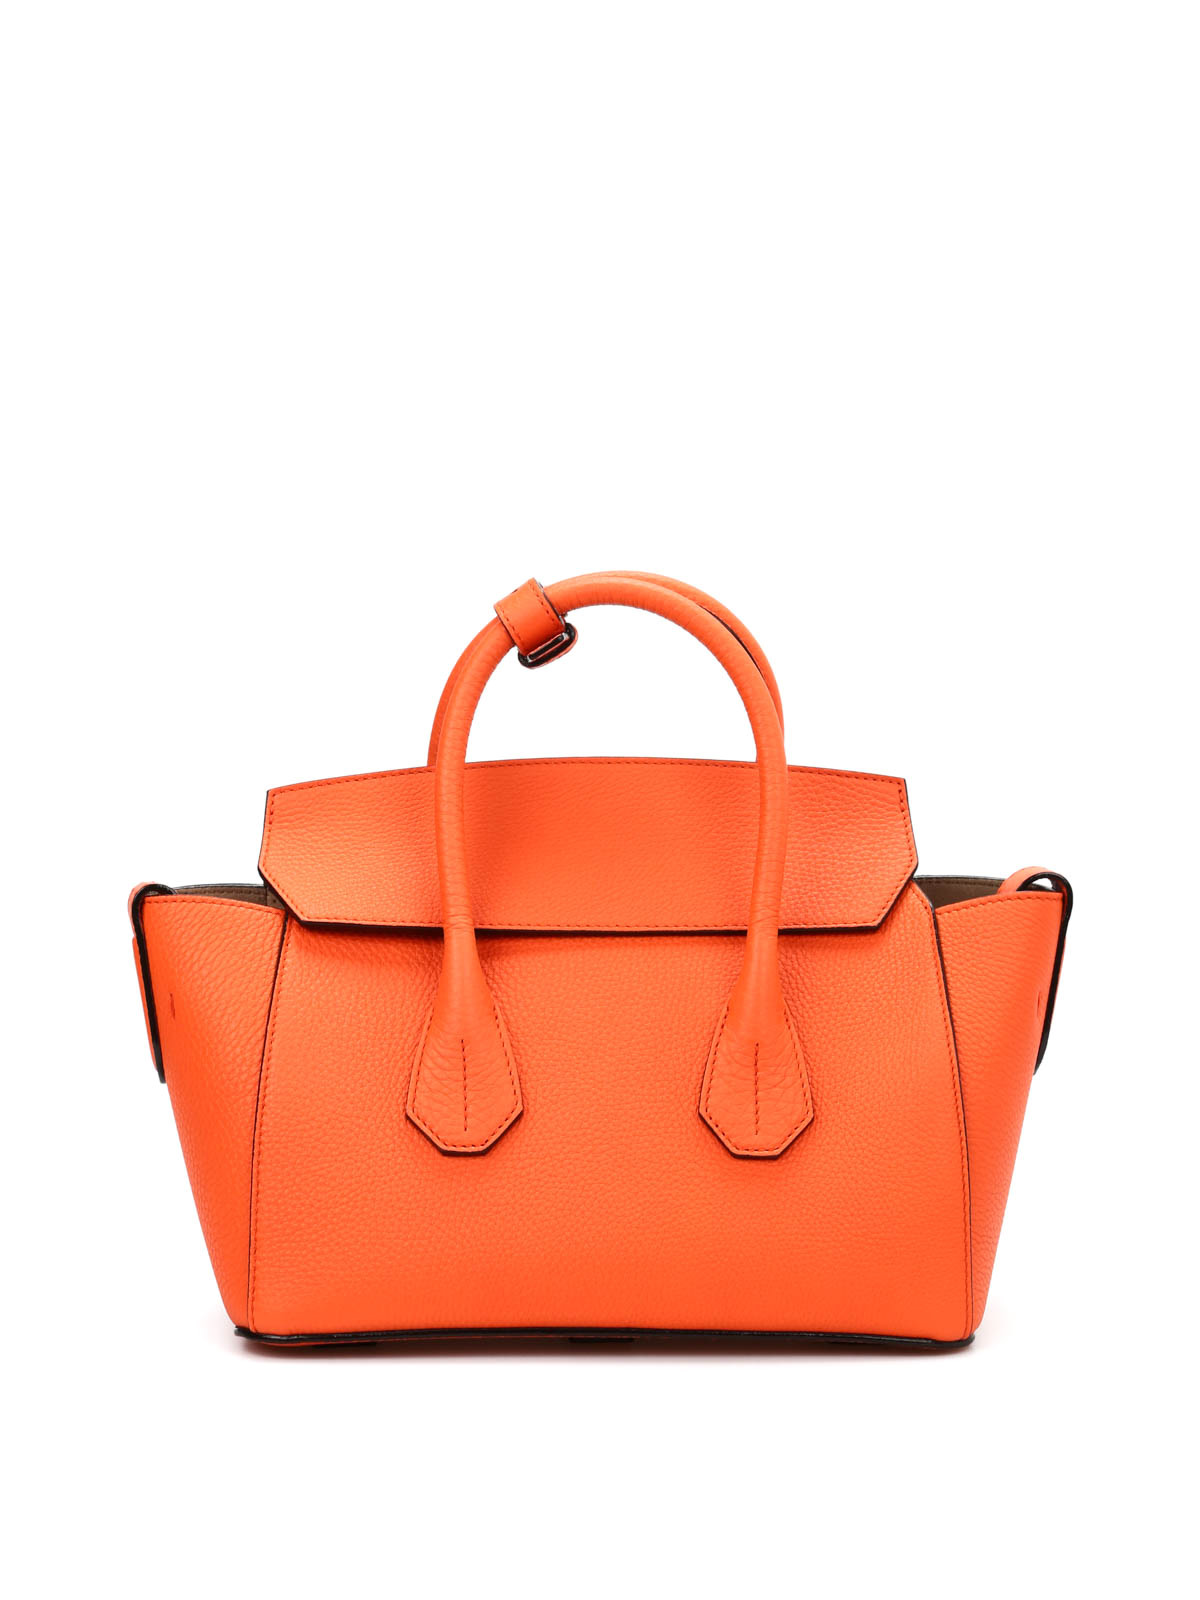 Bally Sommet Small Leather Tote Totes Bags 6204328 Ikrix Com